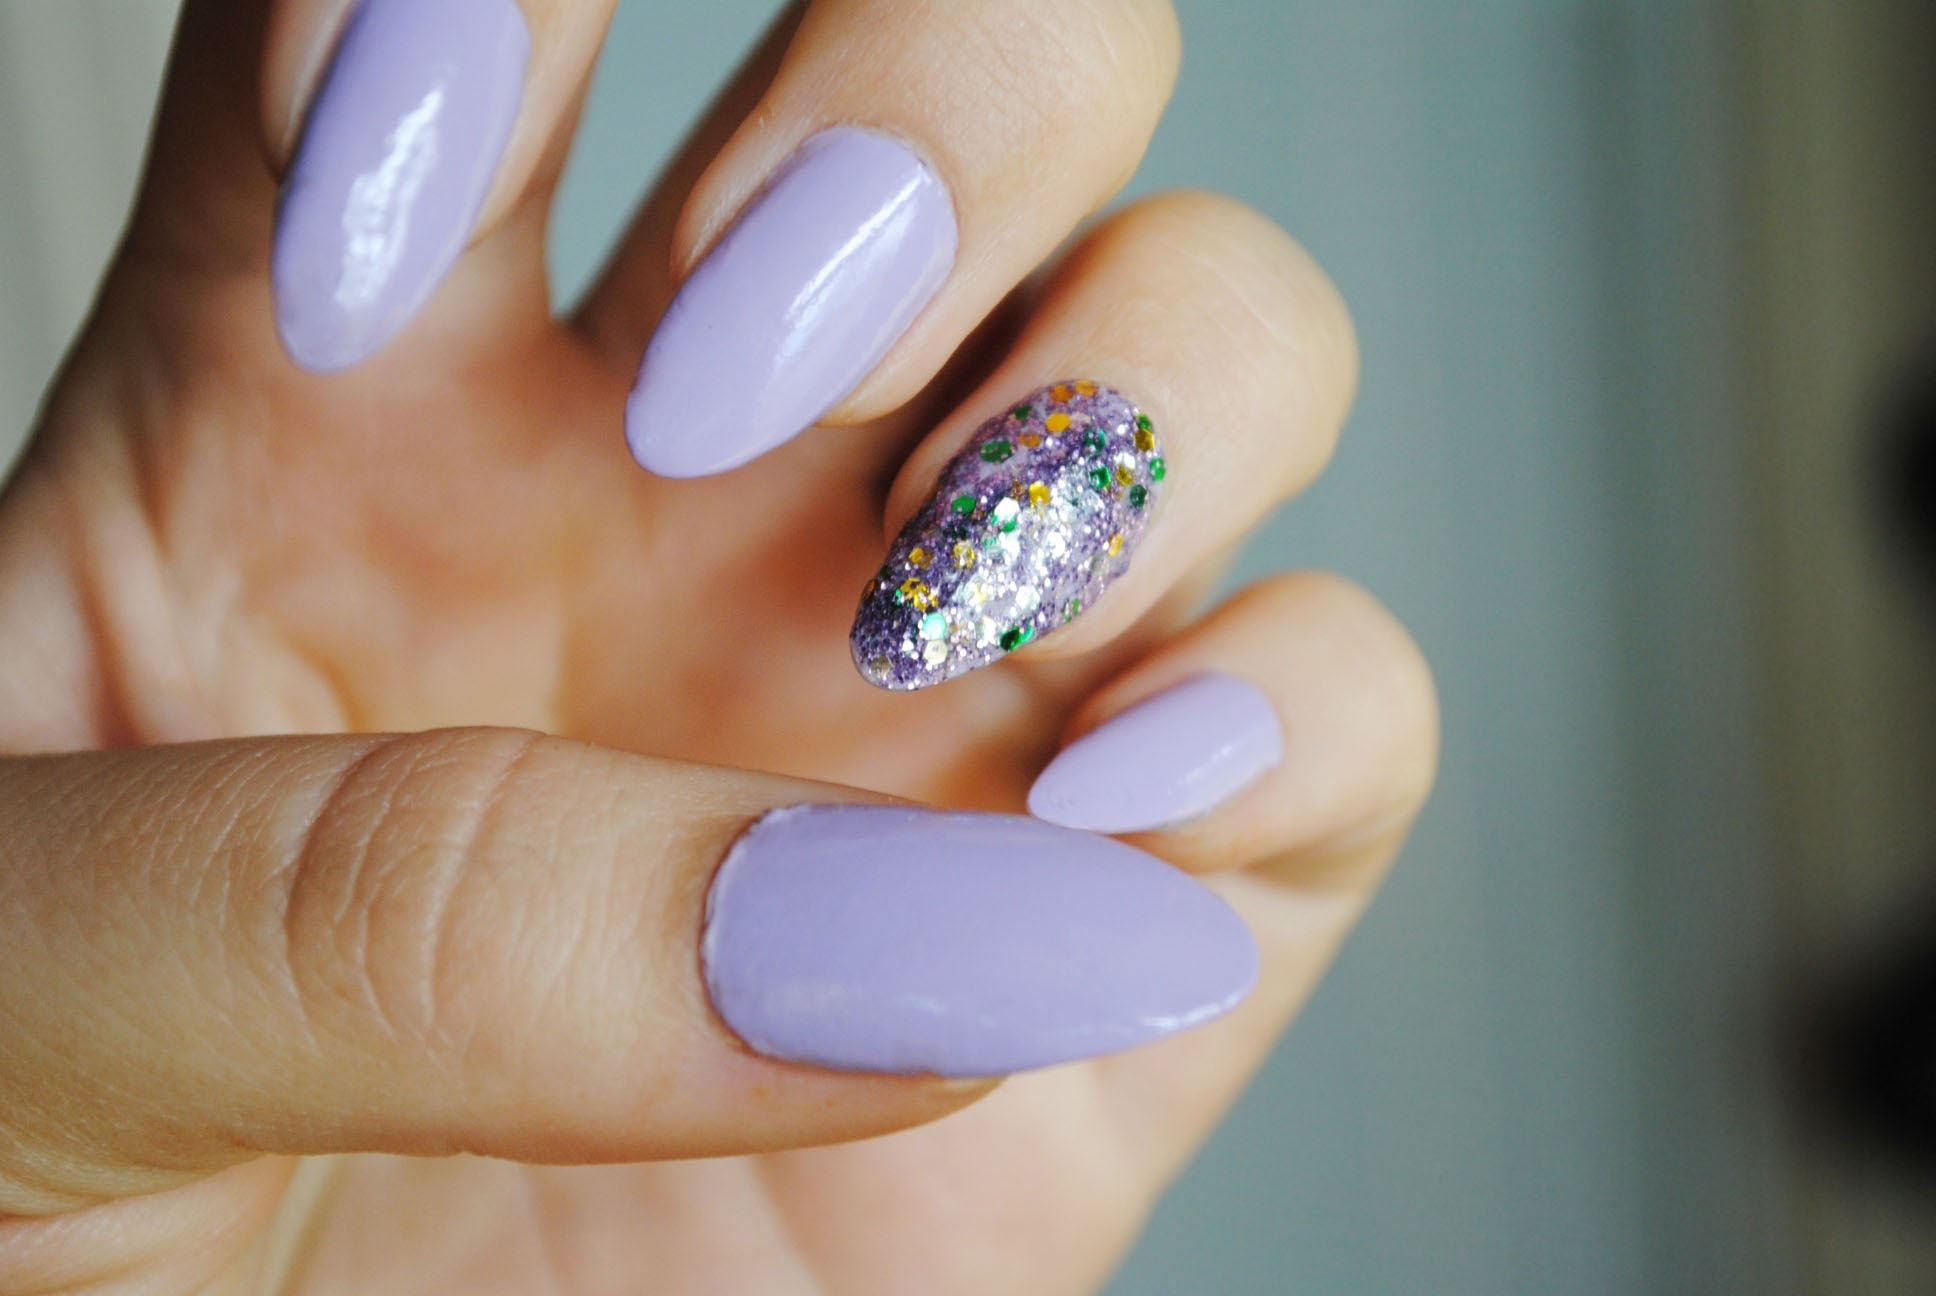 Diy acrylic nail designs short stiletto nails with a glitter accent solutioingenieria Images